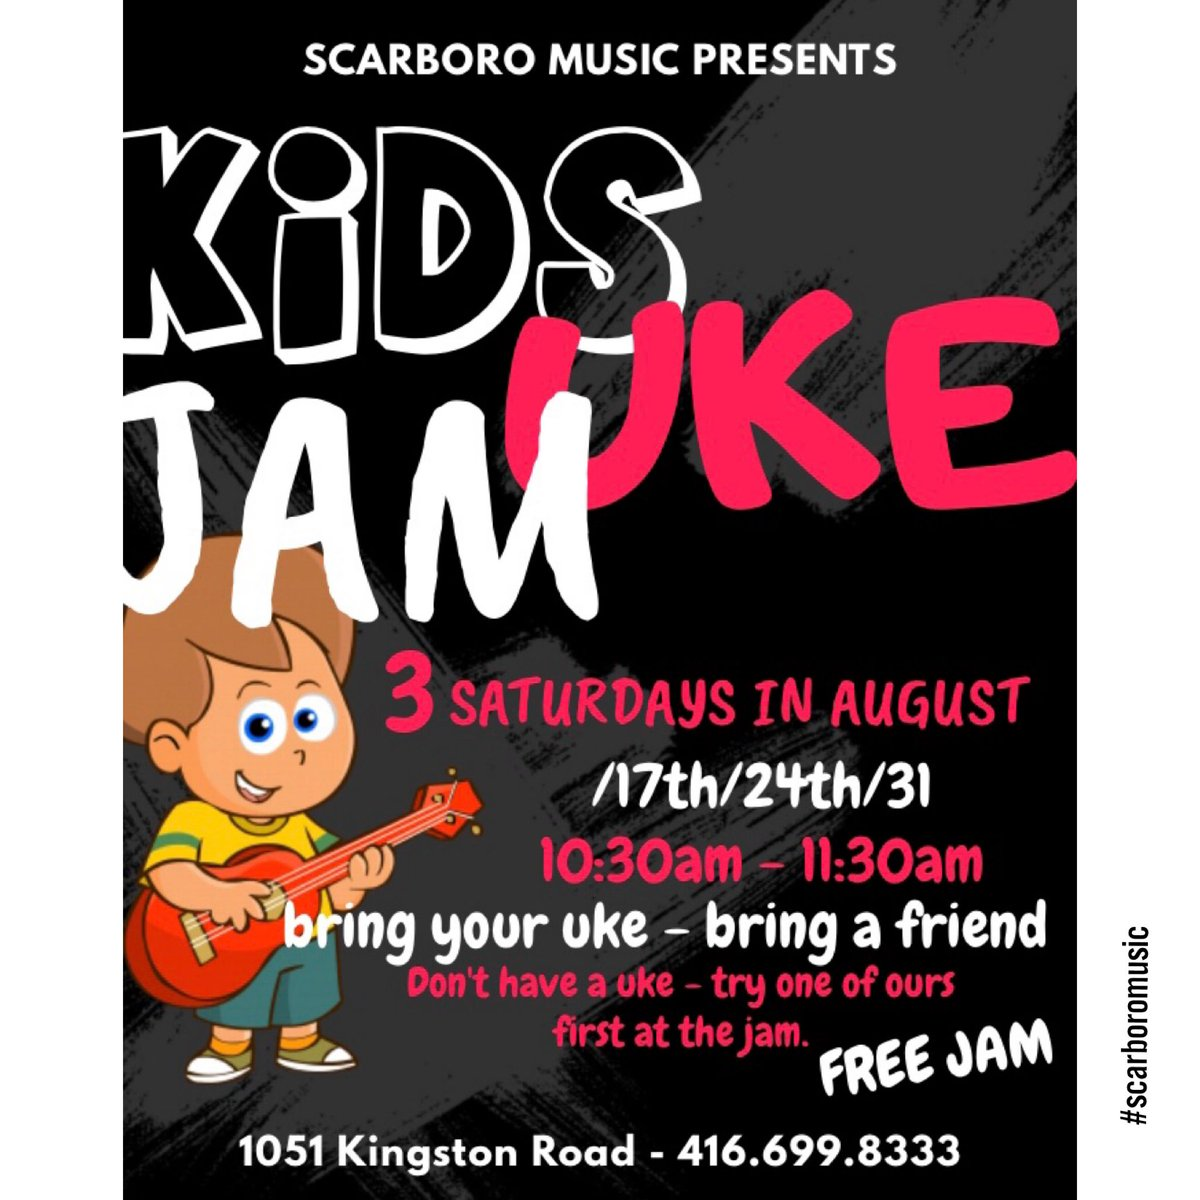 KIDS UKULELE JAM - Saturday @ 10:30am! Come out - learn to play the uke and jam some tunes! Don't have a uke? Come out and use one of ours! Bring your friends, family and furbabies!  #wearemusic #kidsukulelejam #kidsmaking<br>http://pic.twitter.com/BRNJtLY3qu